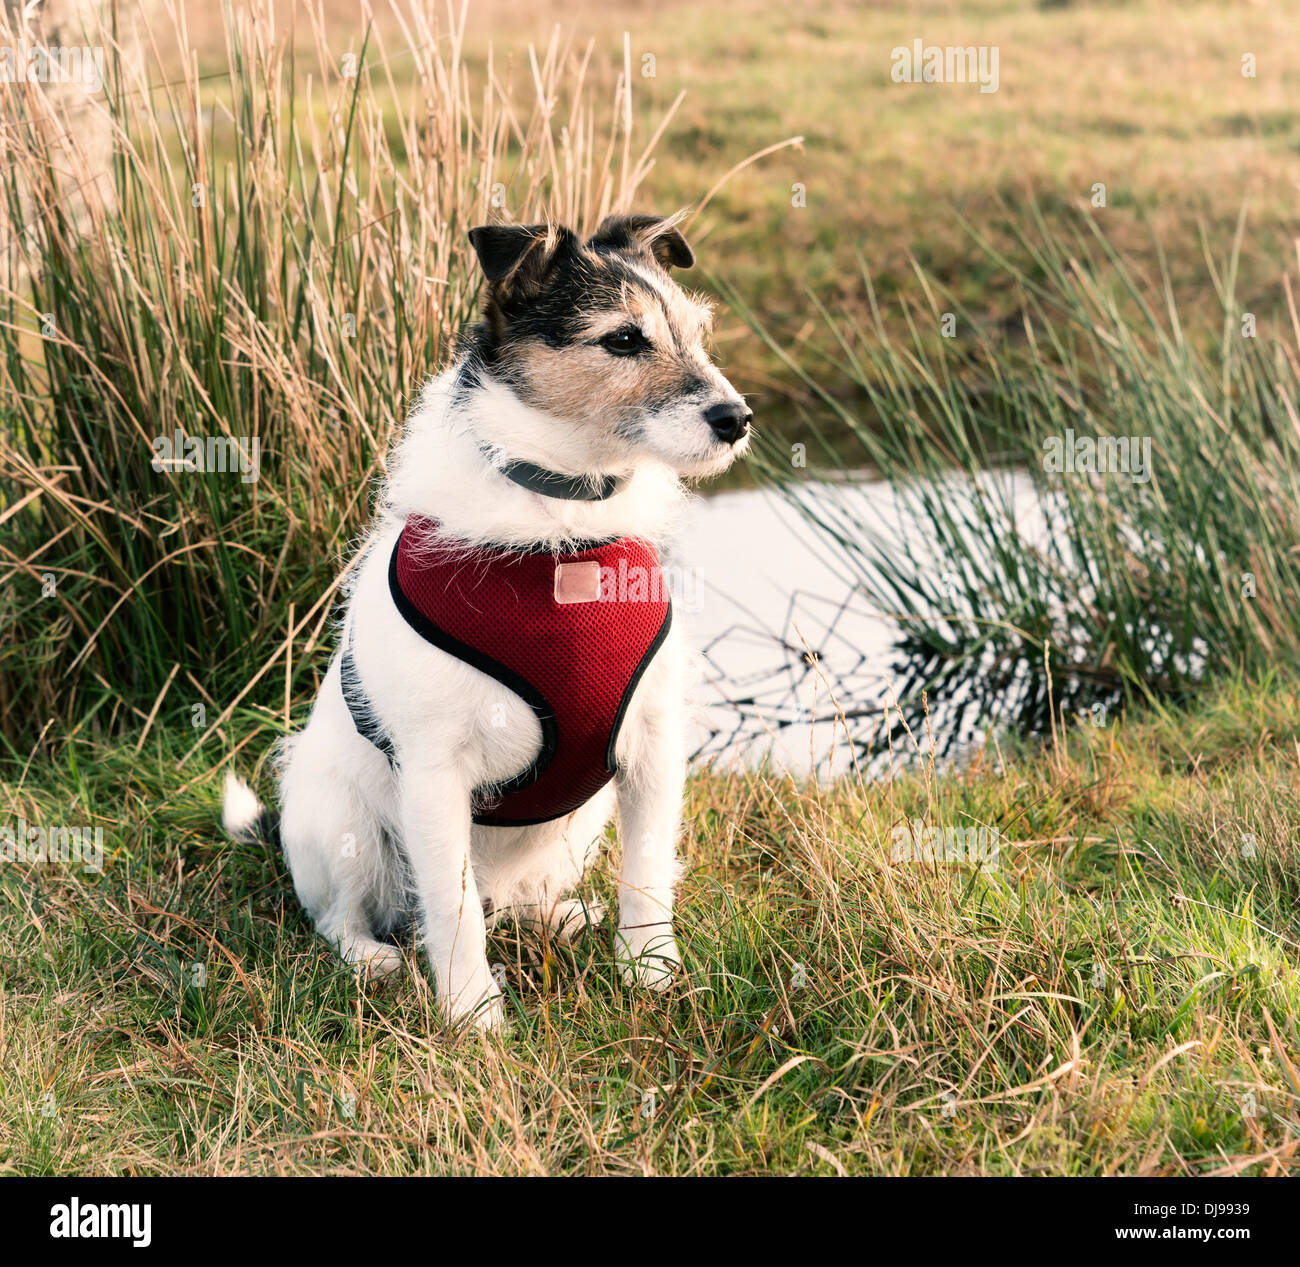 Working Jack Russell Terrier wearing a red harness - Stock Image